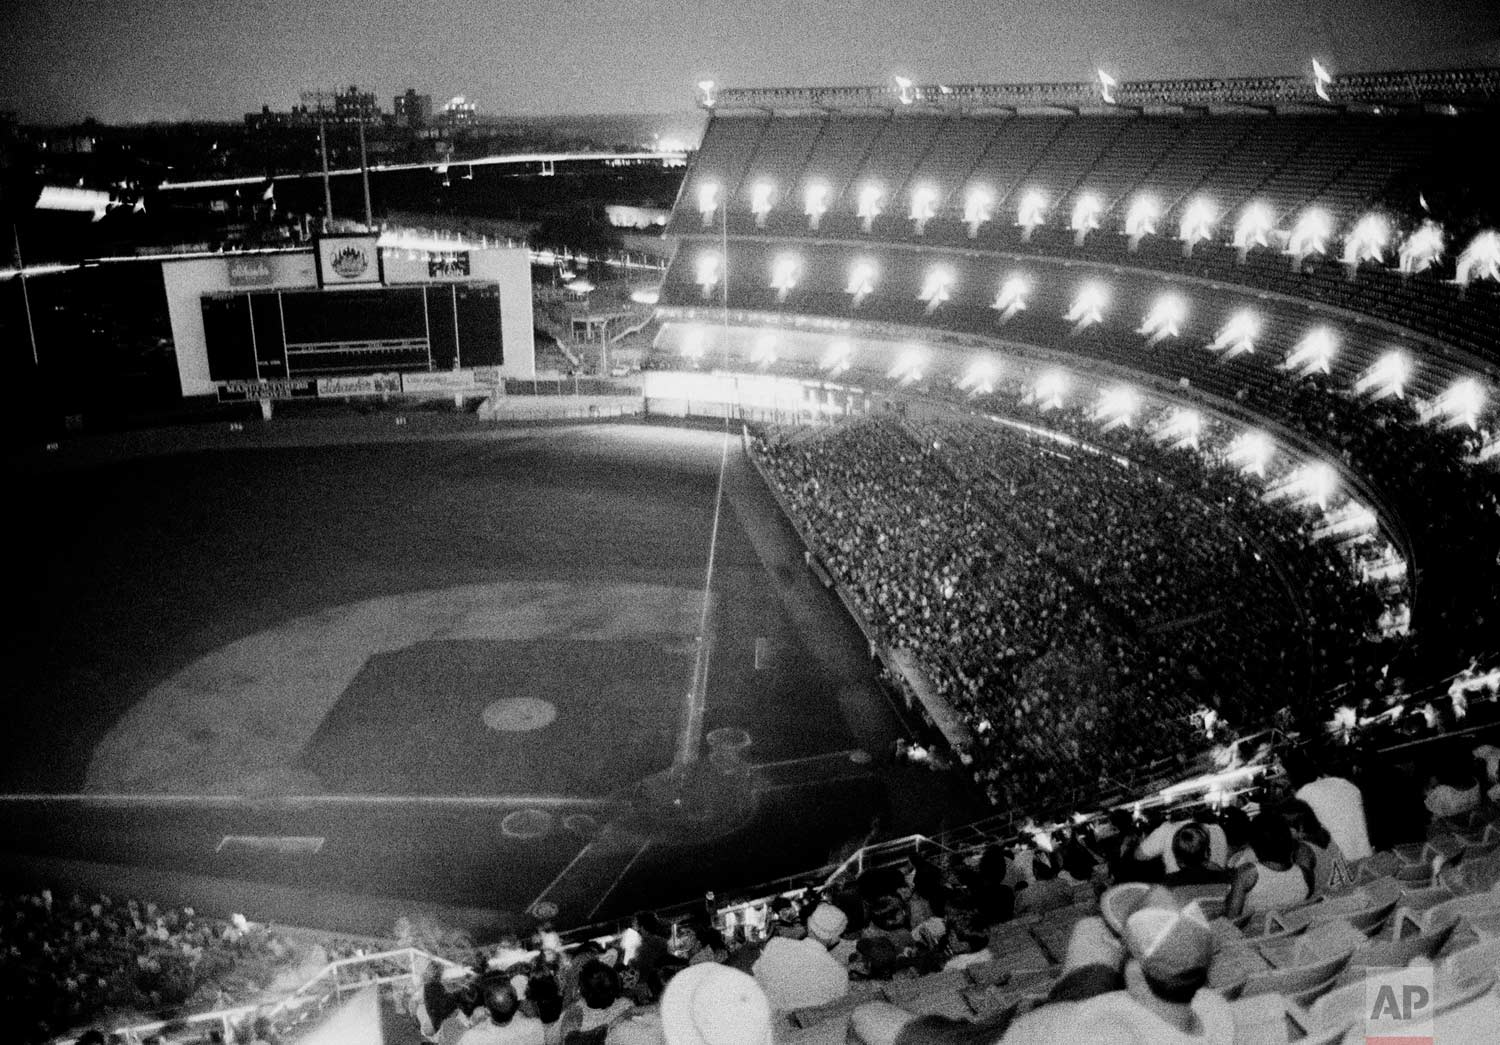 New York's Shea Stadium lies in darkness during the bottom of the sixth inning after the lights went out during the game with the Chicago Cubs, July 13, 1977.  The Mets were not the only ones blacked out as it appeared the power failure affected most of New York City. (AP Photo/Ray Stubblebine)